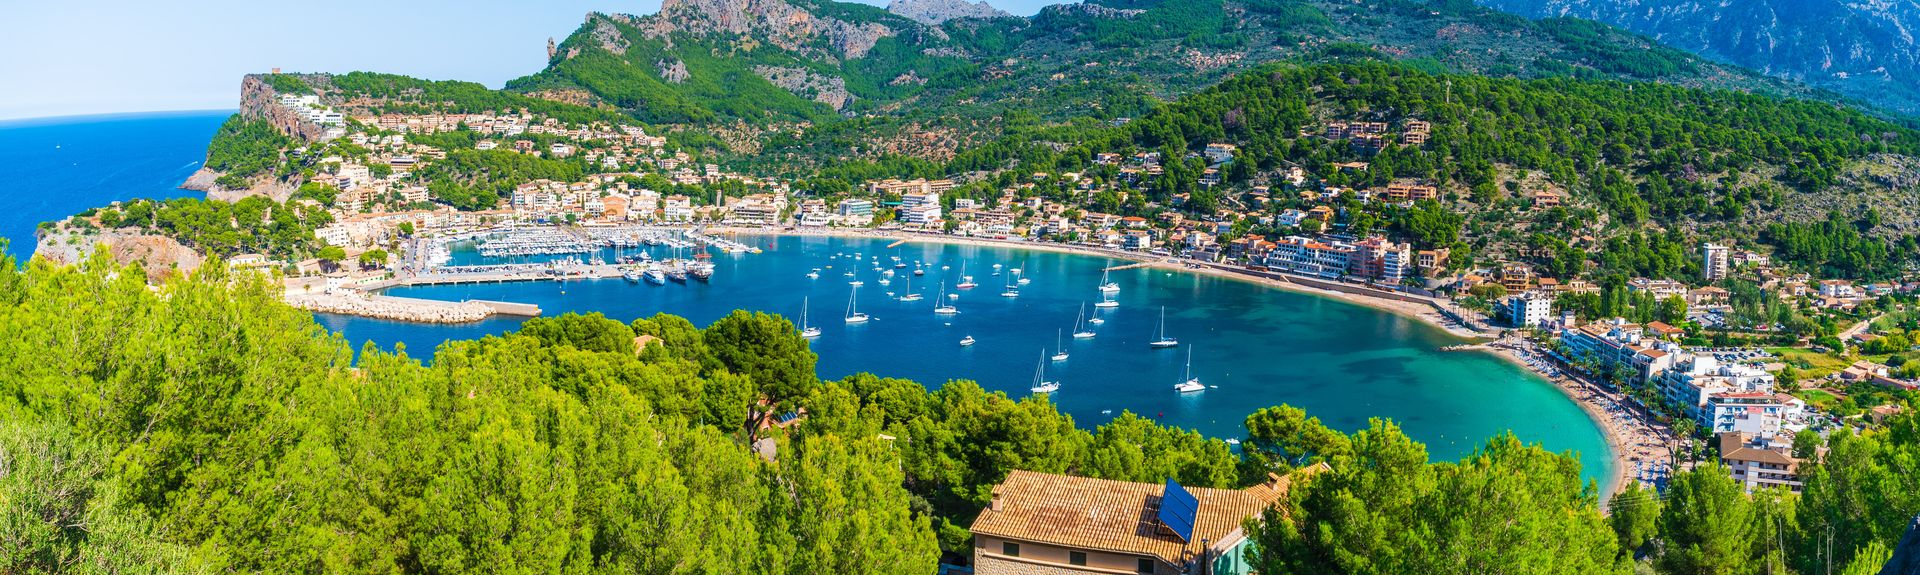 Soller, Balearic Islands, Spain